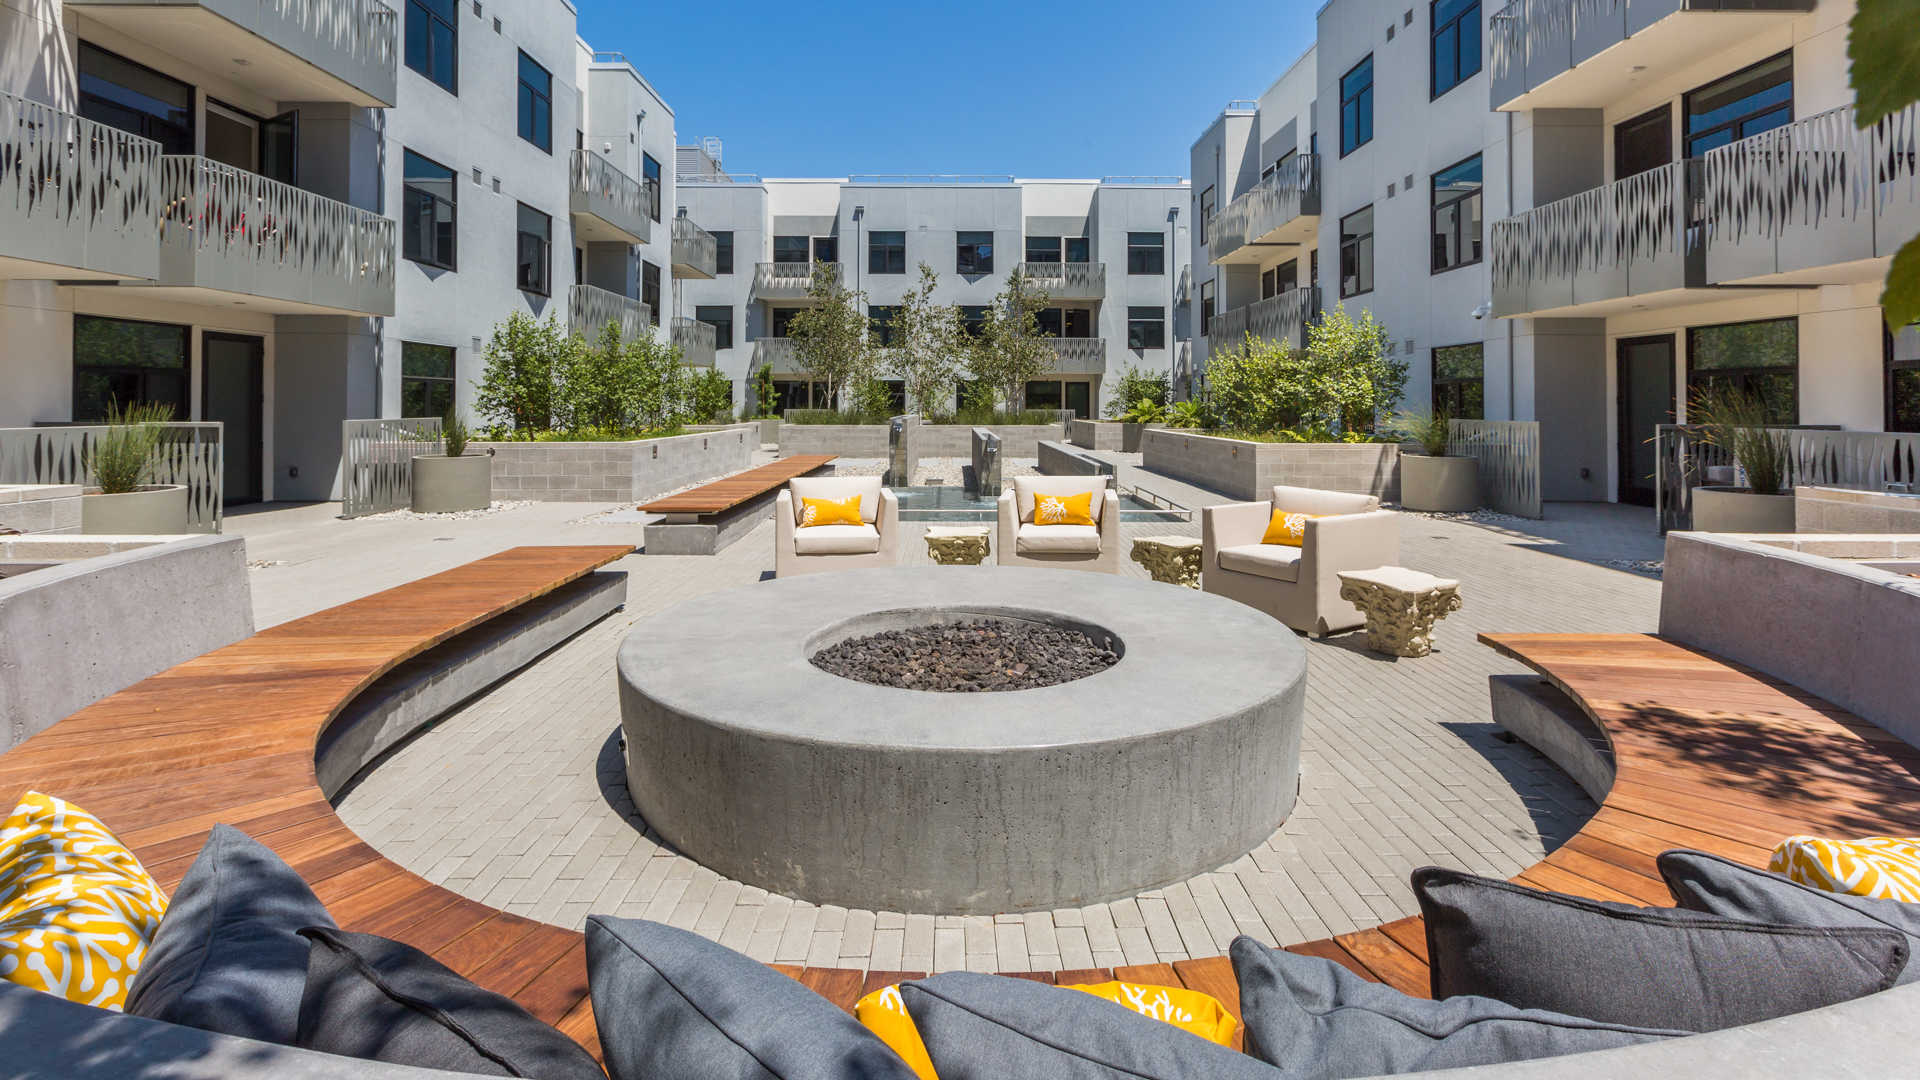 Azure apartments fire pit